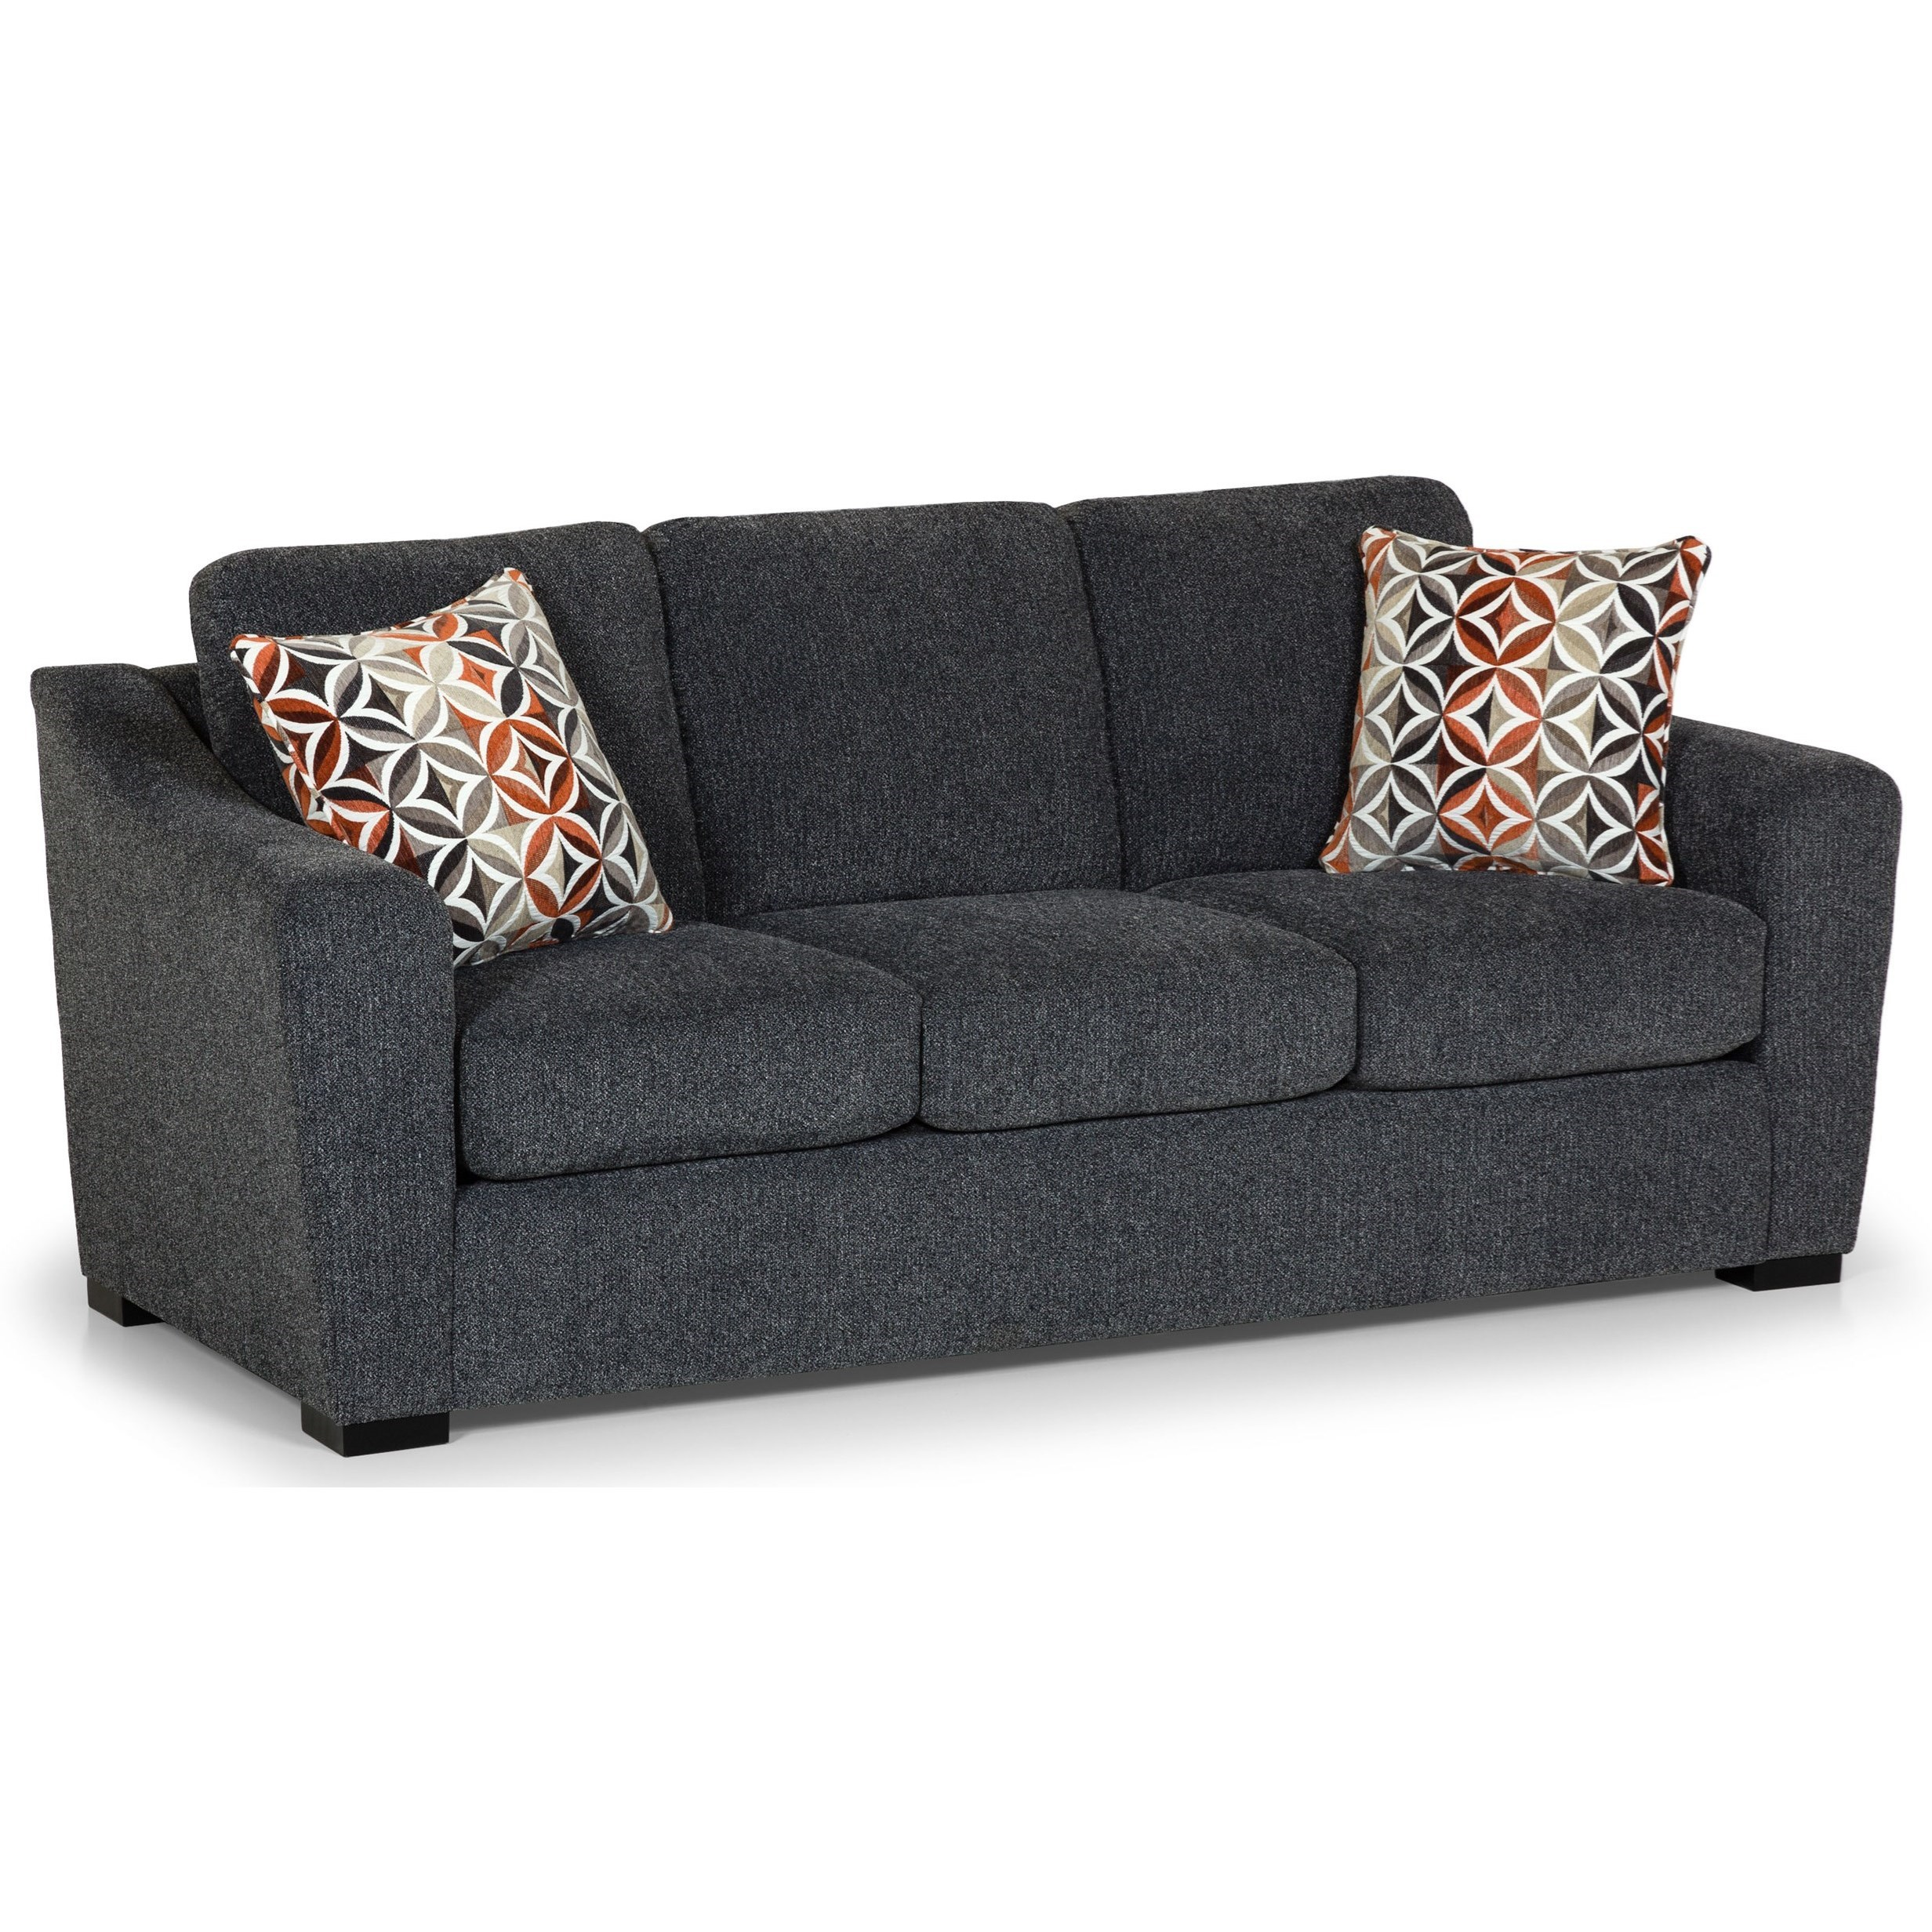 459 Sofa by Stanton at Wilson's Furniture